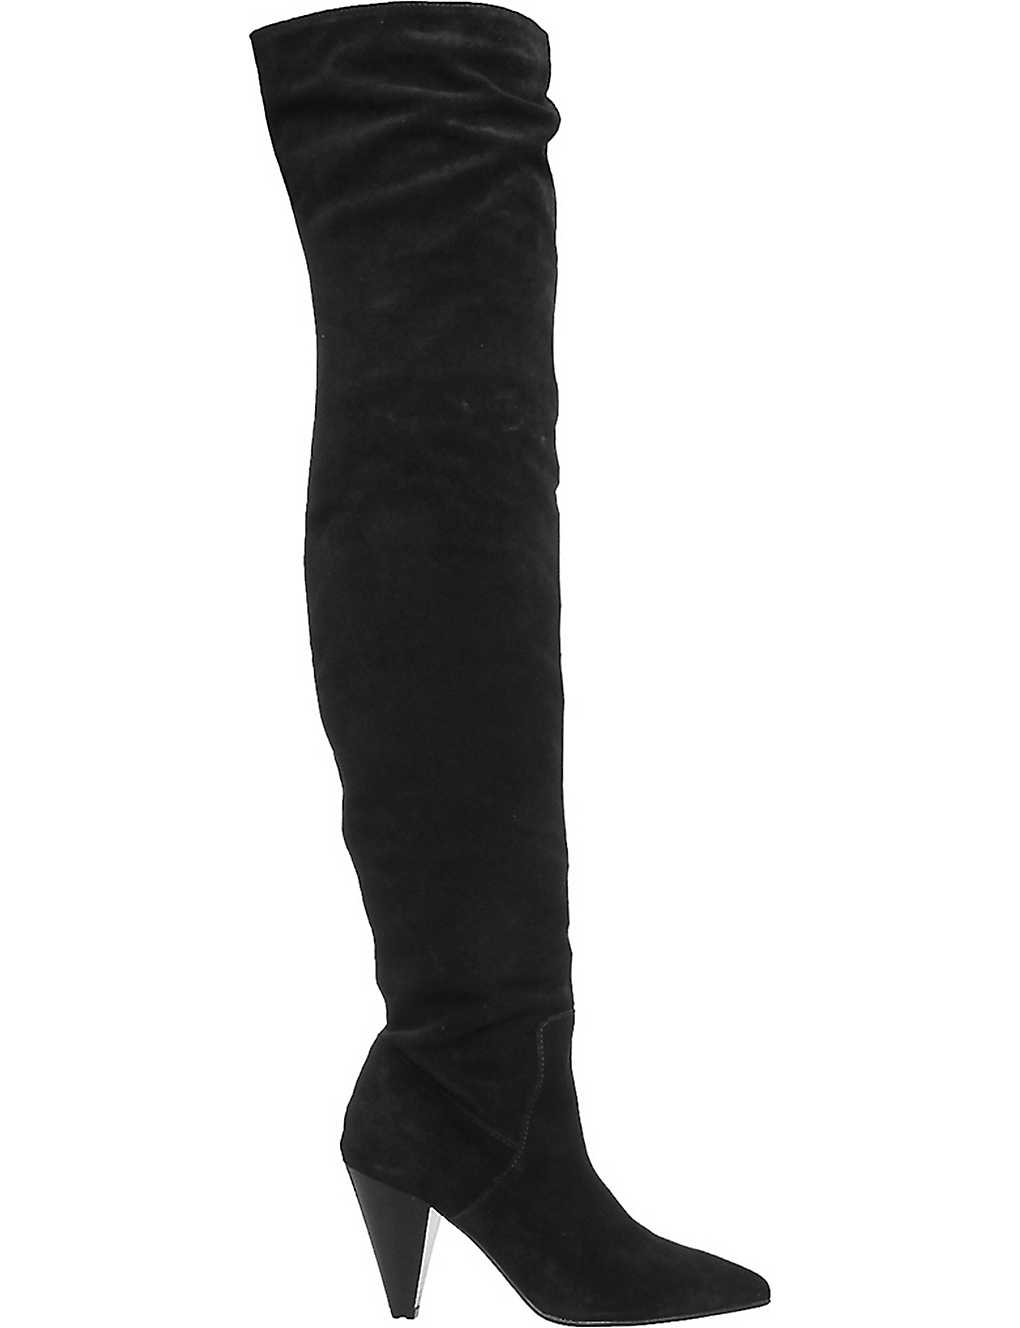 OFFICE - Kone slouch over-the-knee boots | Selfridges com